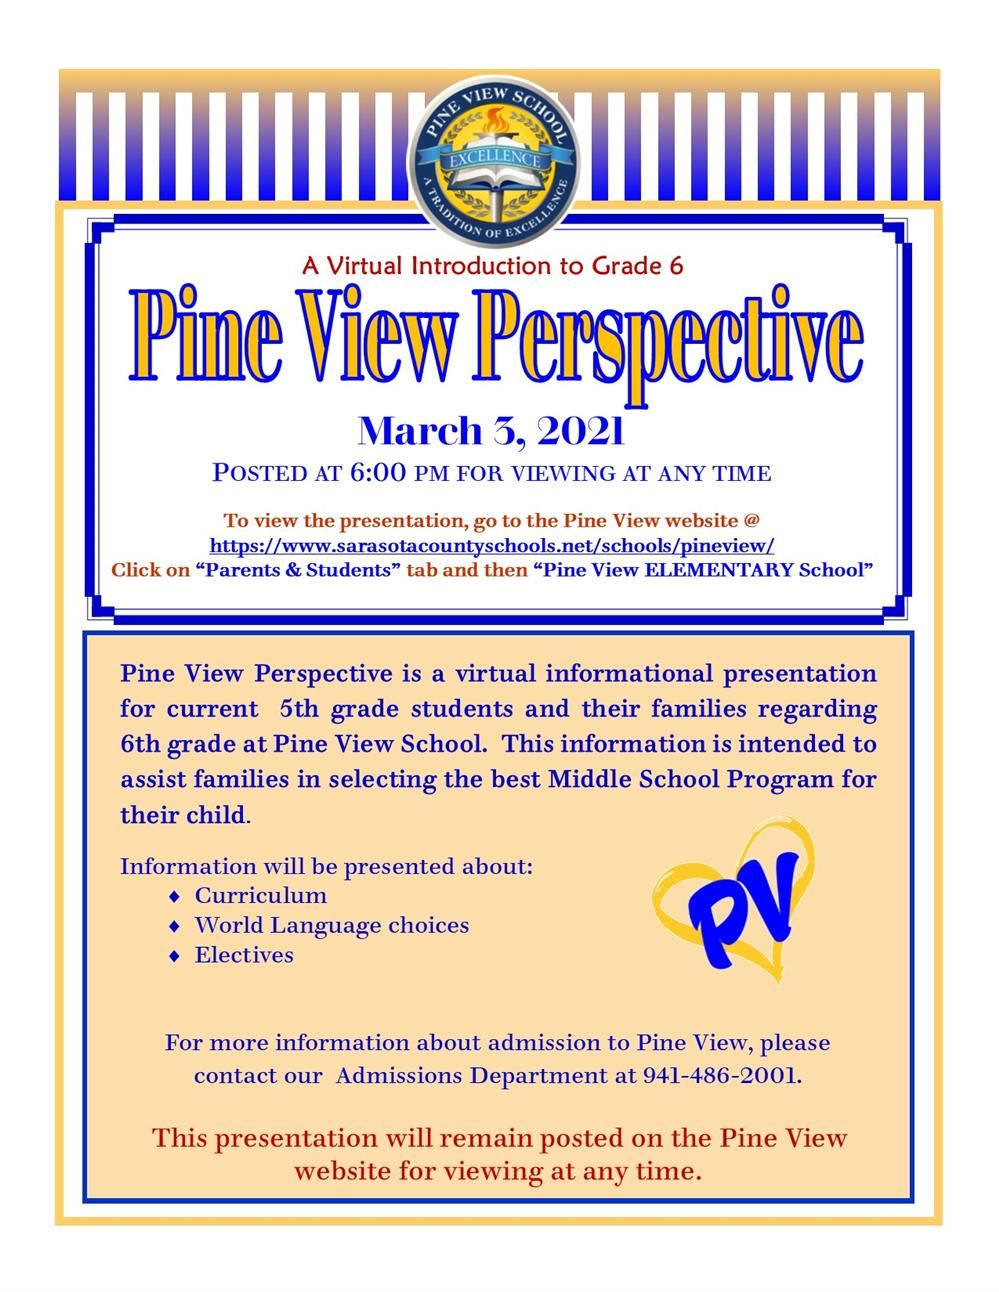 Pine View Perspective